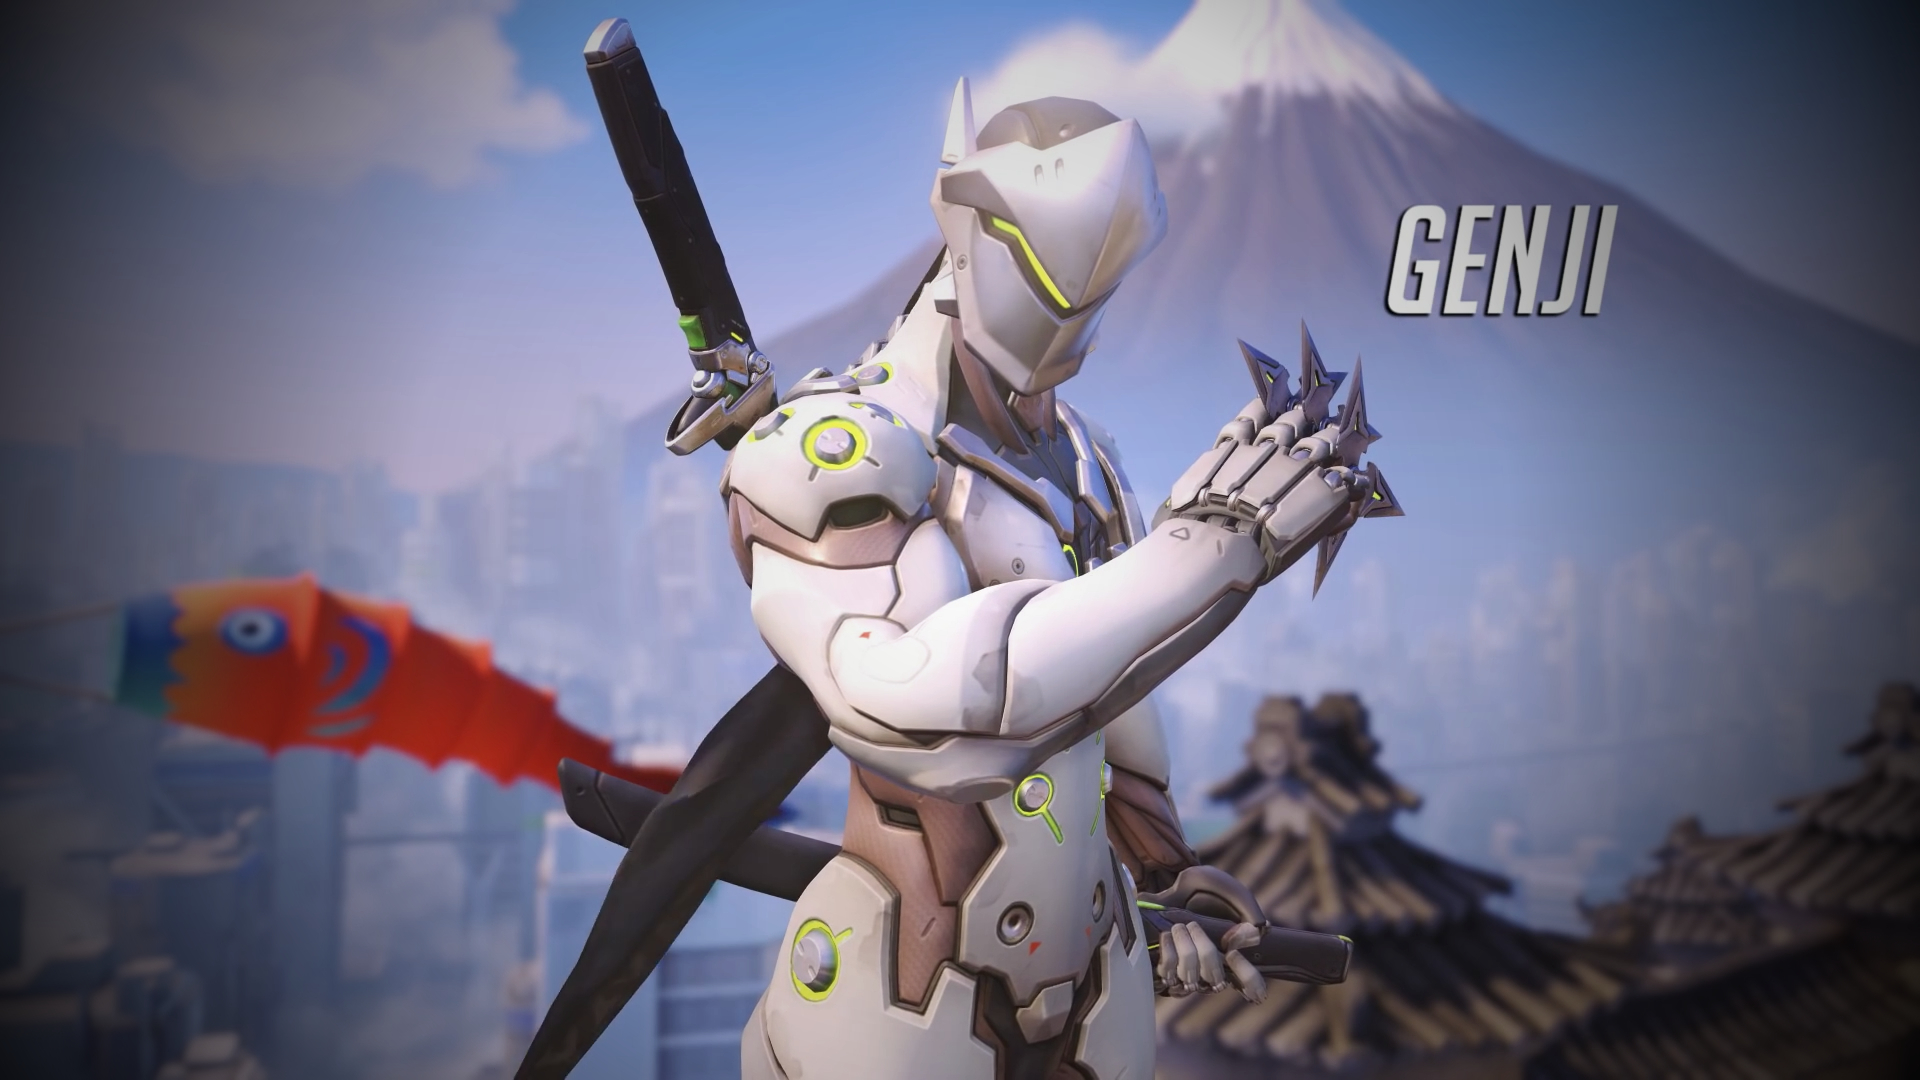 Overwatch Genji Wallpaper   1920 x 1080 by Mac117 1920x1080